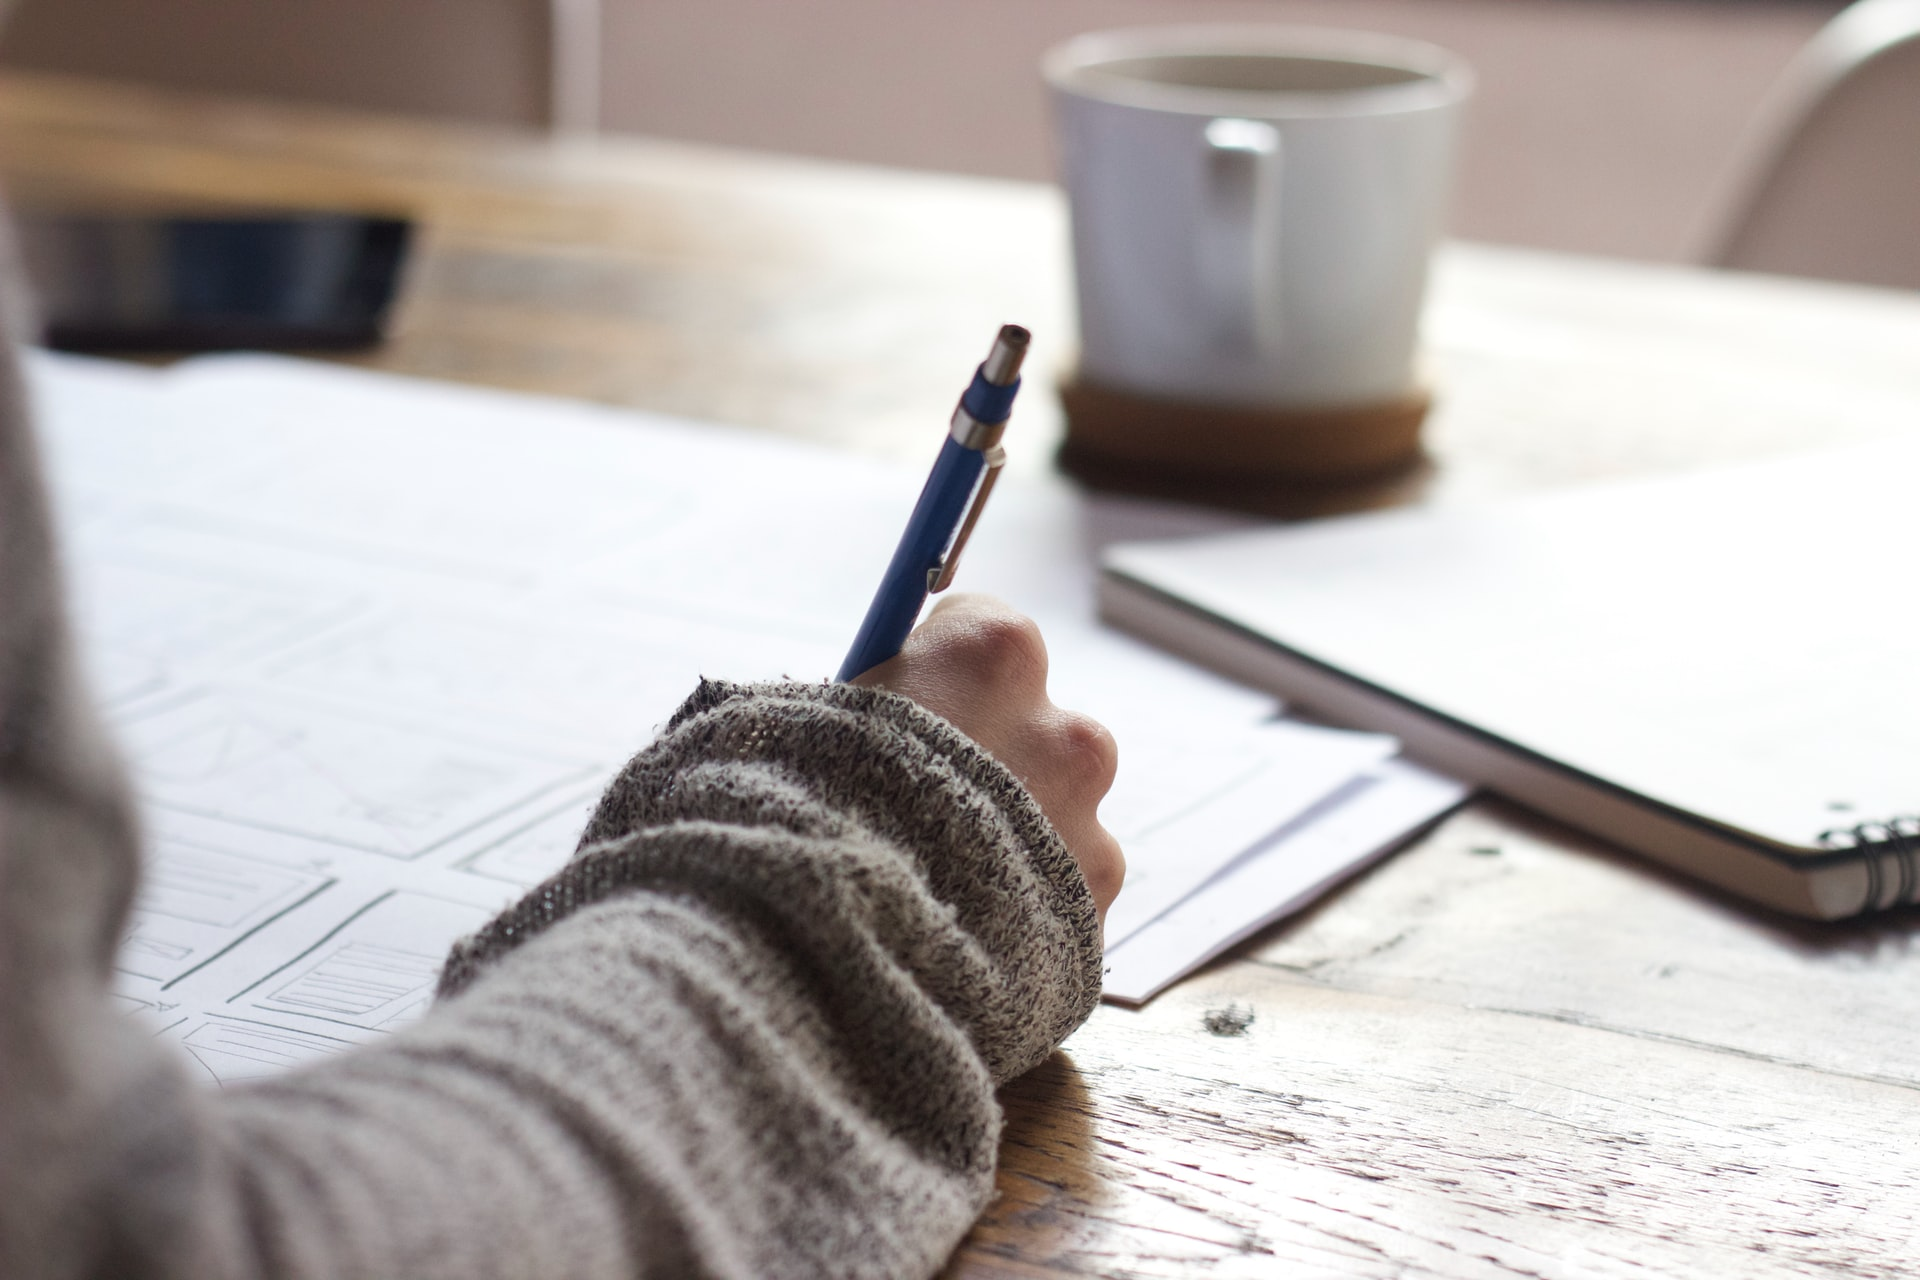 A close-up view of a desk with paper and a mug on it, and a person's arm holding a pen and making notes.